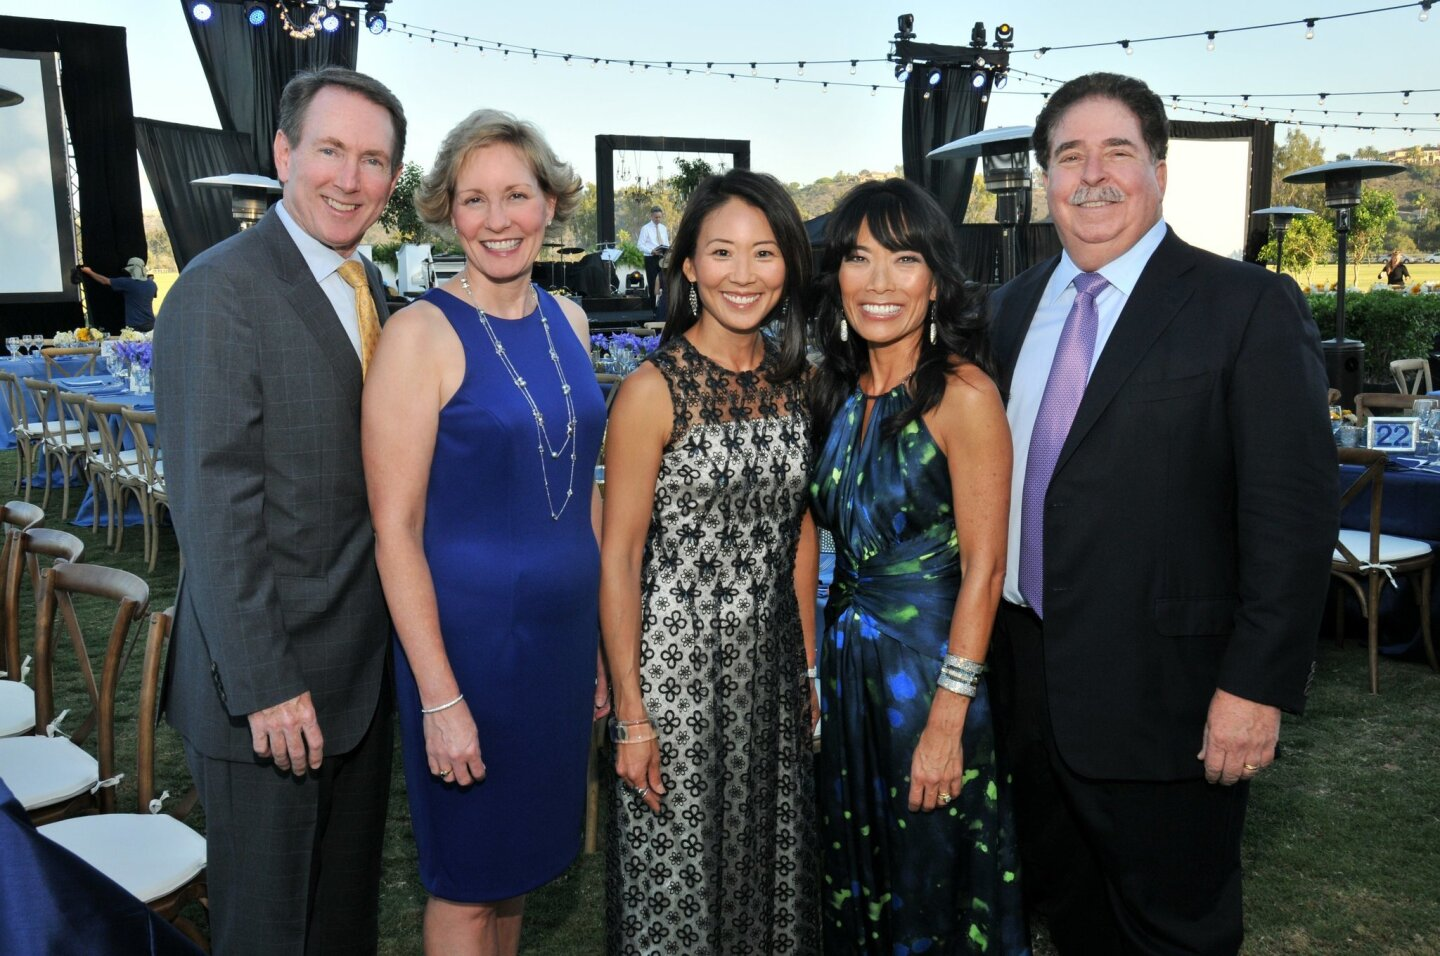 Darin Boles and Sharon Lawrence (Voices CEO), Haeyoung Tang (event co-chair), Jennifer and Dr. Richard Greenfield (event co-chairs) attend the Starry Starry Night gala, a fundraiser for Voices for Children, Sept. 13, 2014 at the San Diego Polo Club in Rancho Santa Fe.